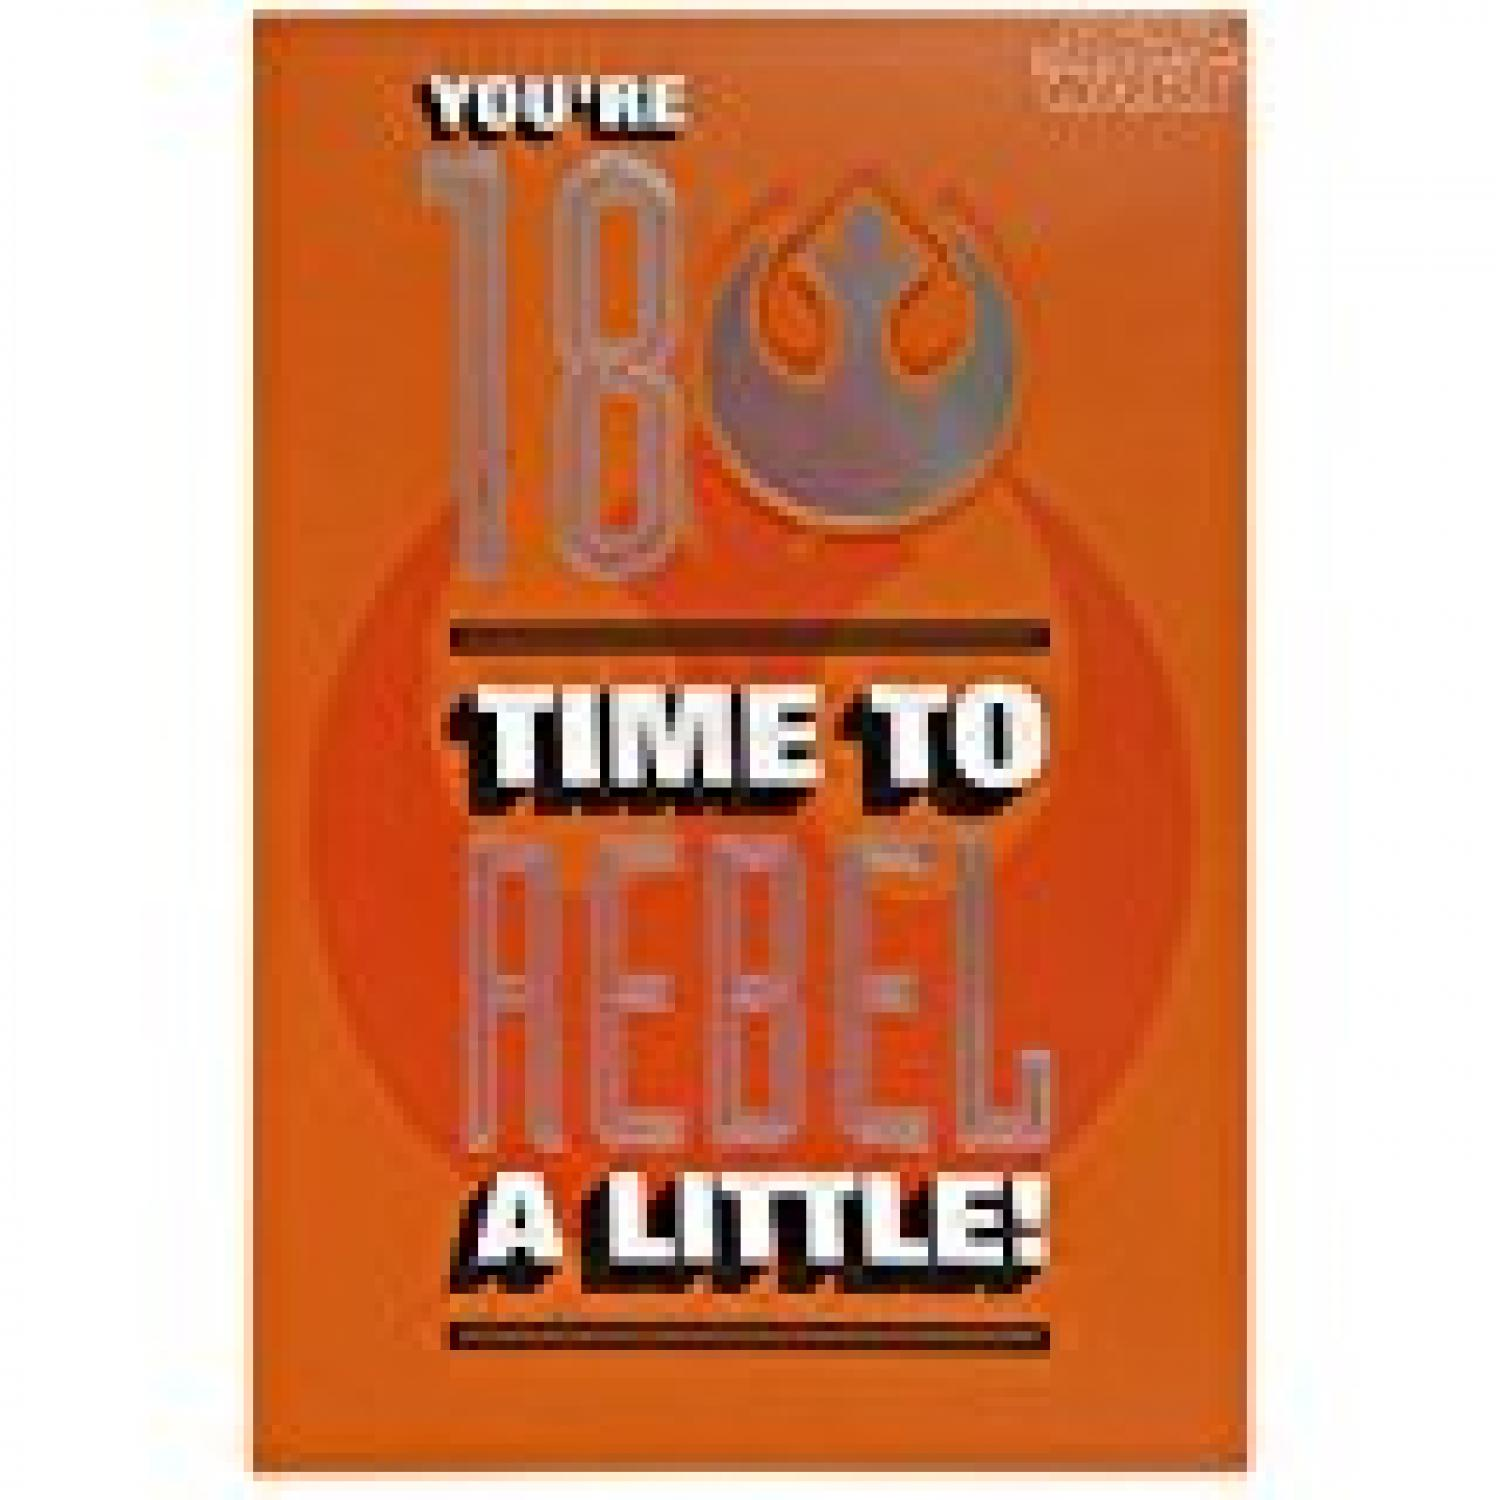 Age 18 star wars birthday card in age cards age 18 star wars birthday card bookmarktalkfo Choice Image